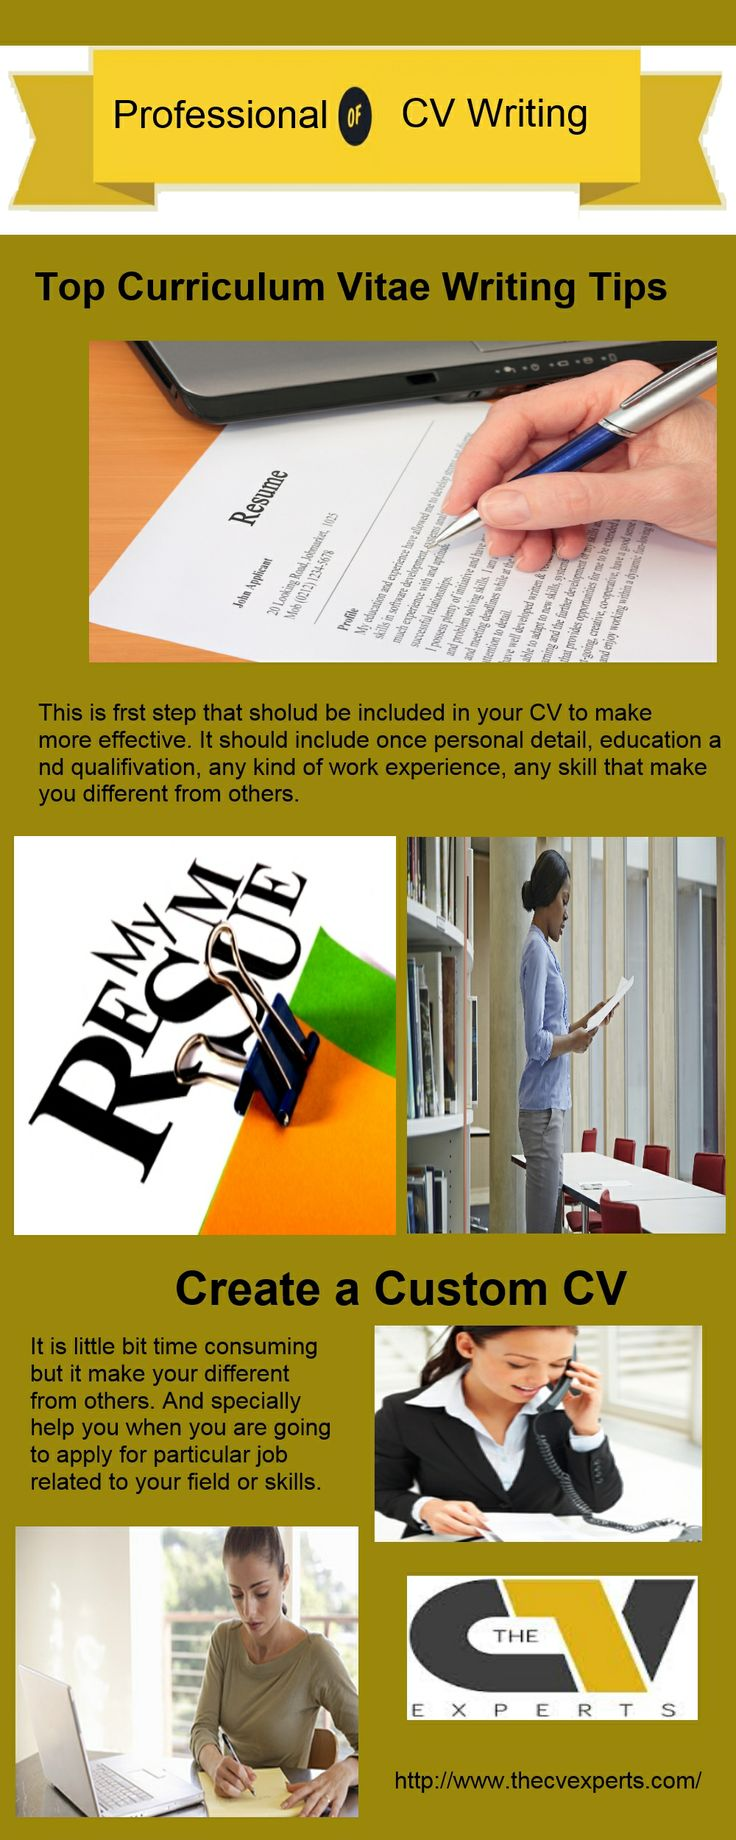 When you can study after that you have to make your cv for your better carrier and growth then some times you can not able to do that perfectly or due to some other. So visit here for more information: http://www.thecvexperts.com/cv-masterclasses/.